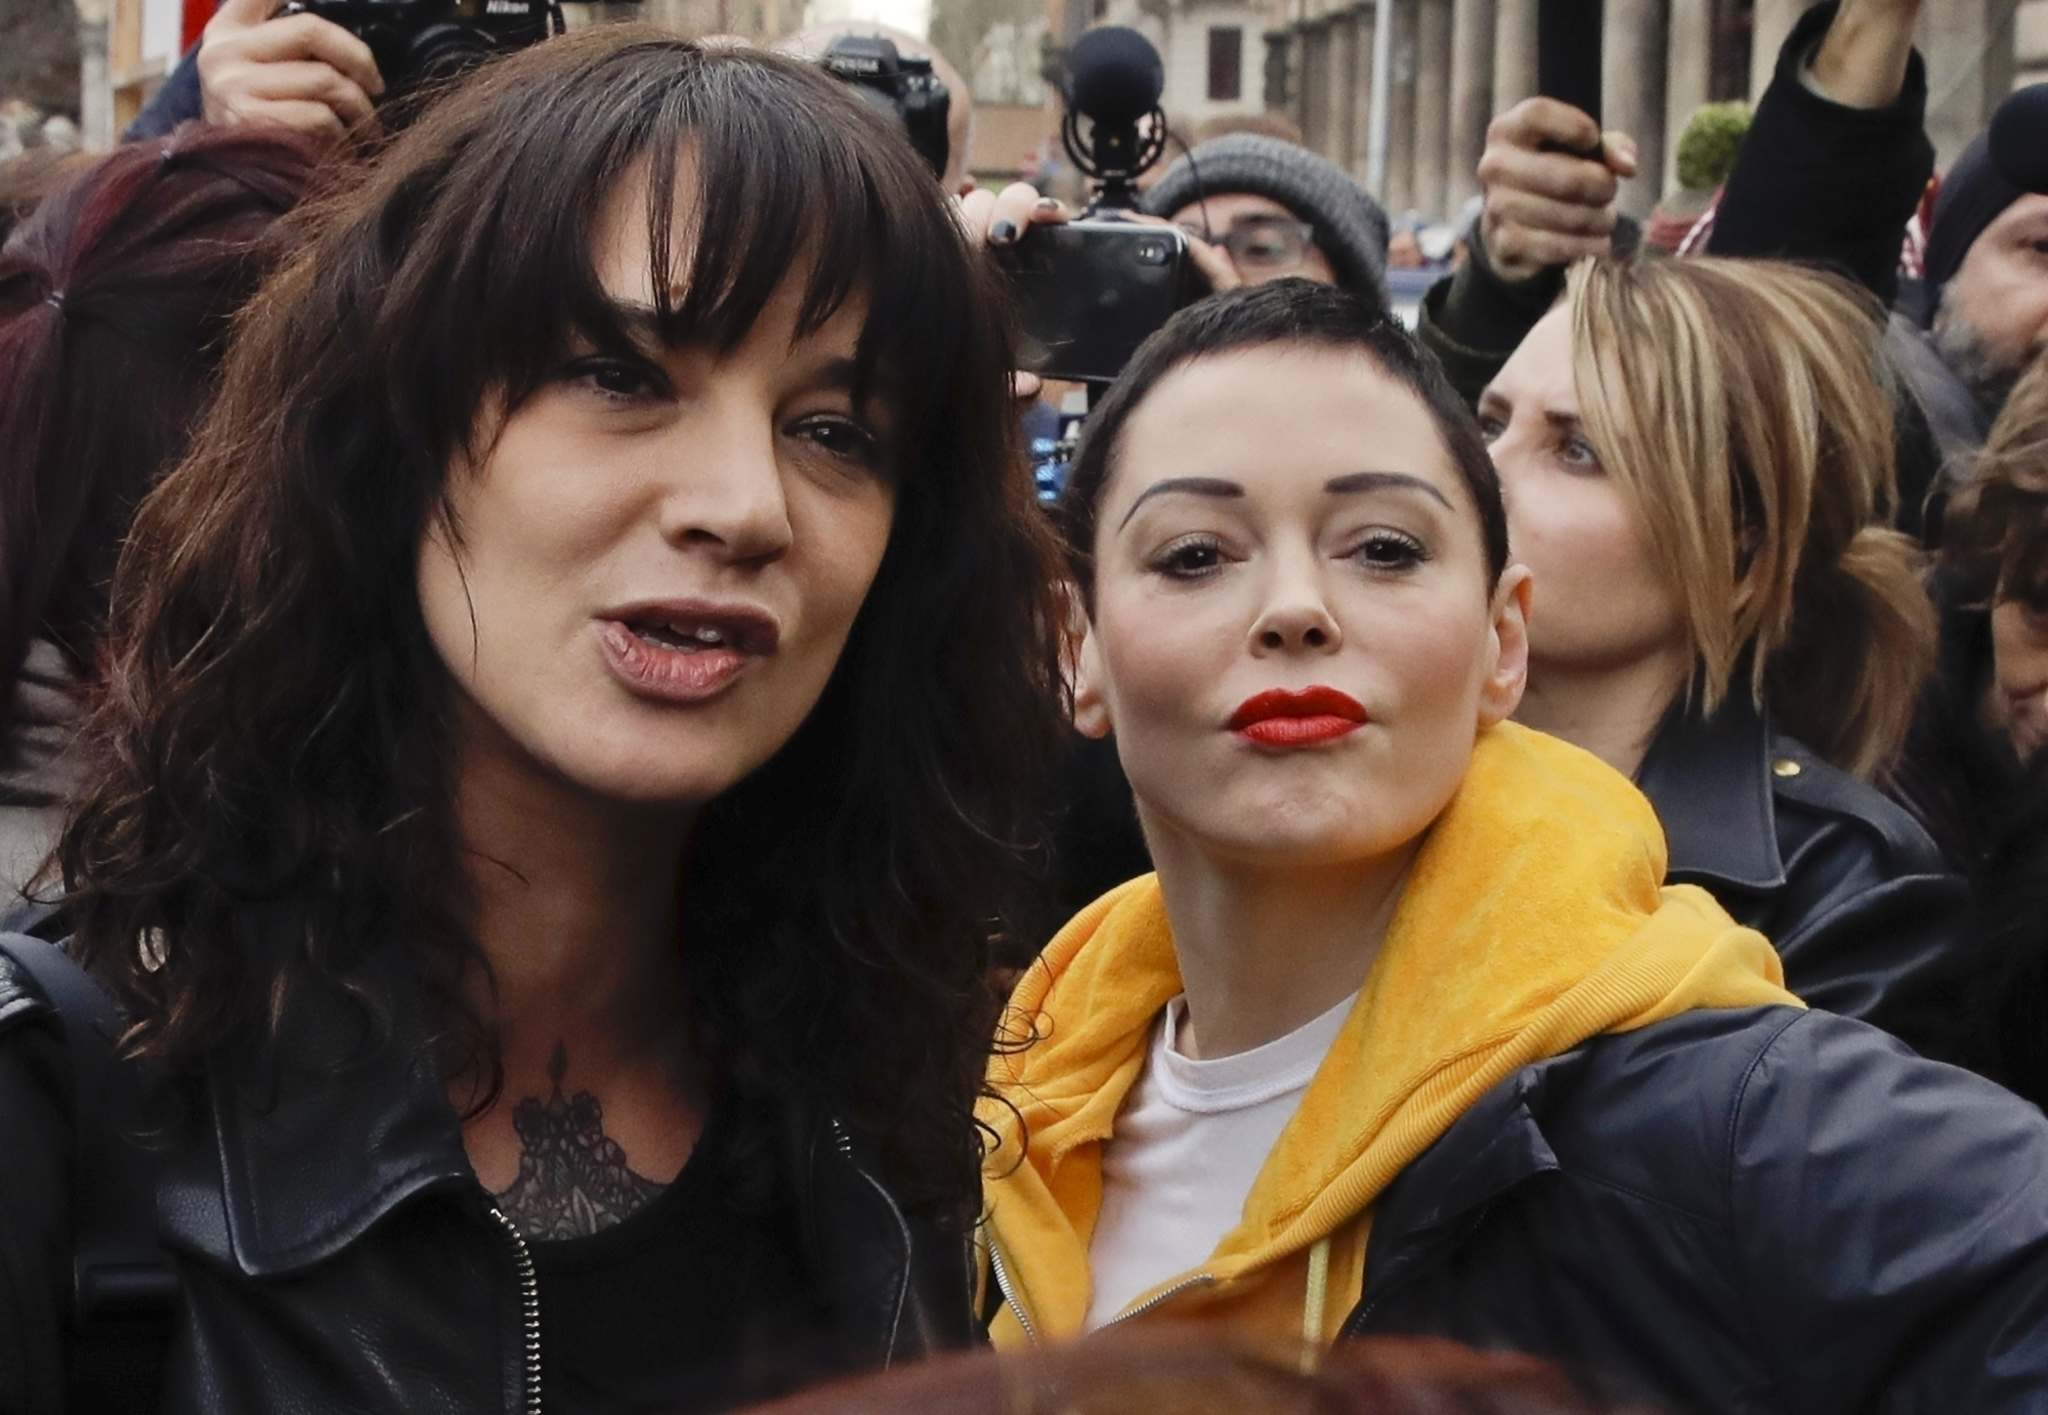 Alessandra Tarantino / The Associated Press</p><p>Asia Argento (left) asked friend Rose McGowan to pen a statement asking the public not to place blame following Anthony Bourdain&rsquo;s suicide.</p>